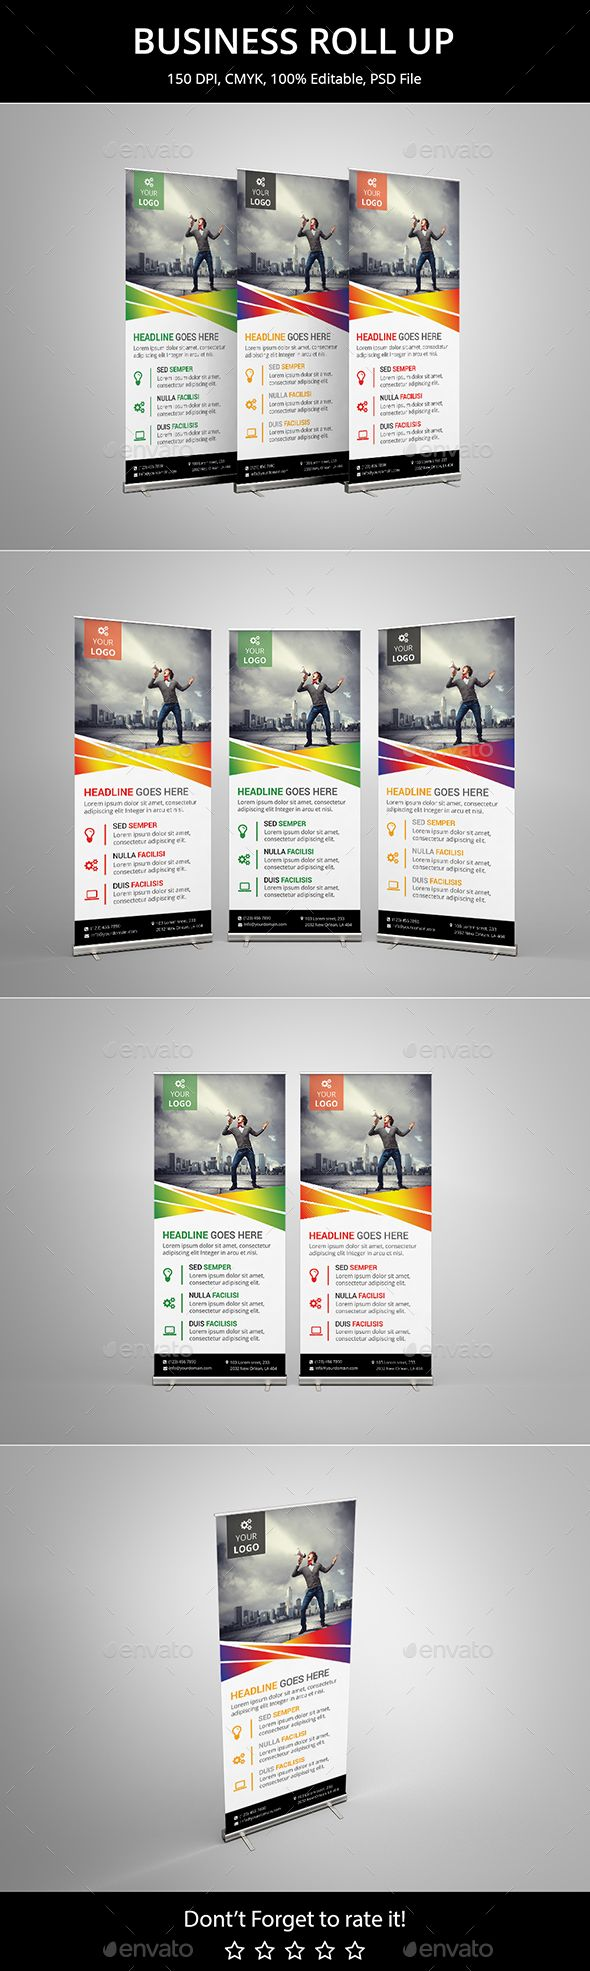 Business Roll up Template PSD. Download here: http://graphicriver.net/item/business-roll-up-v9/16061788?ref=ksioks